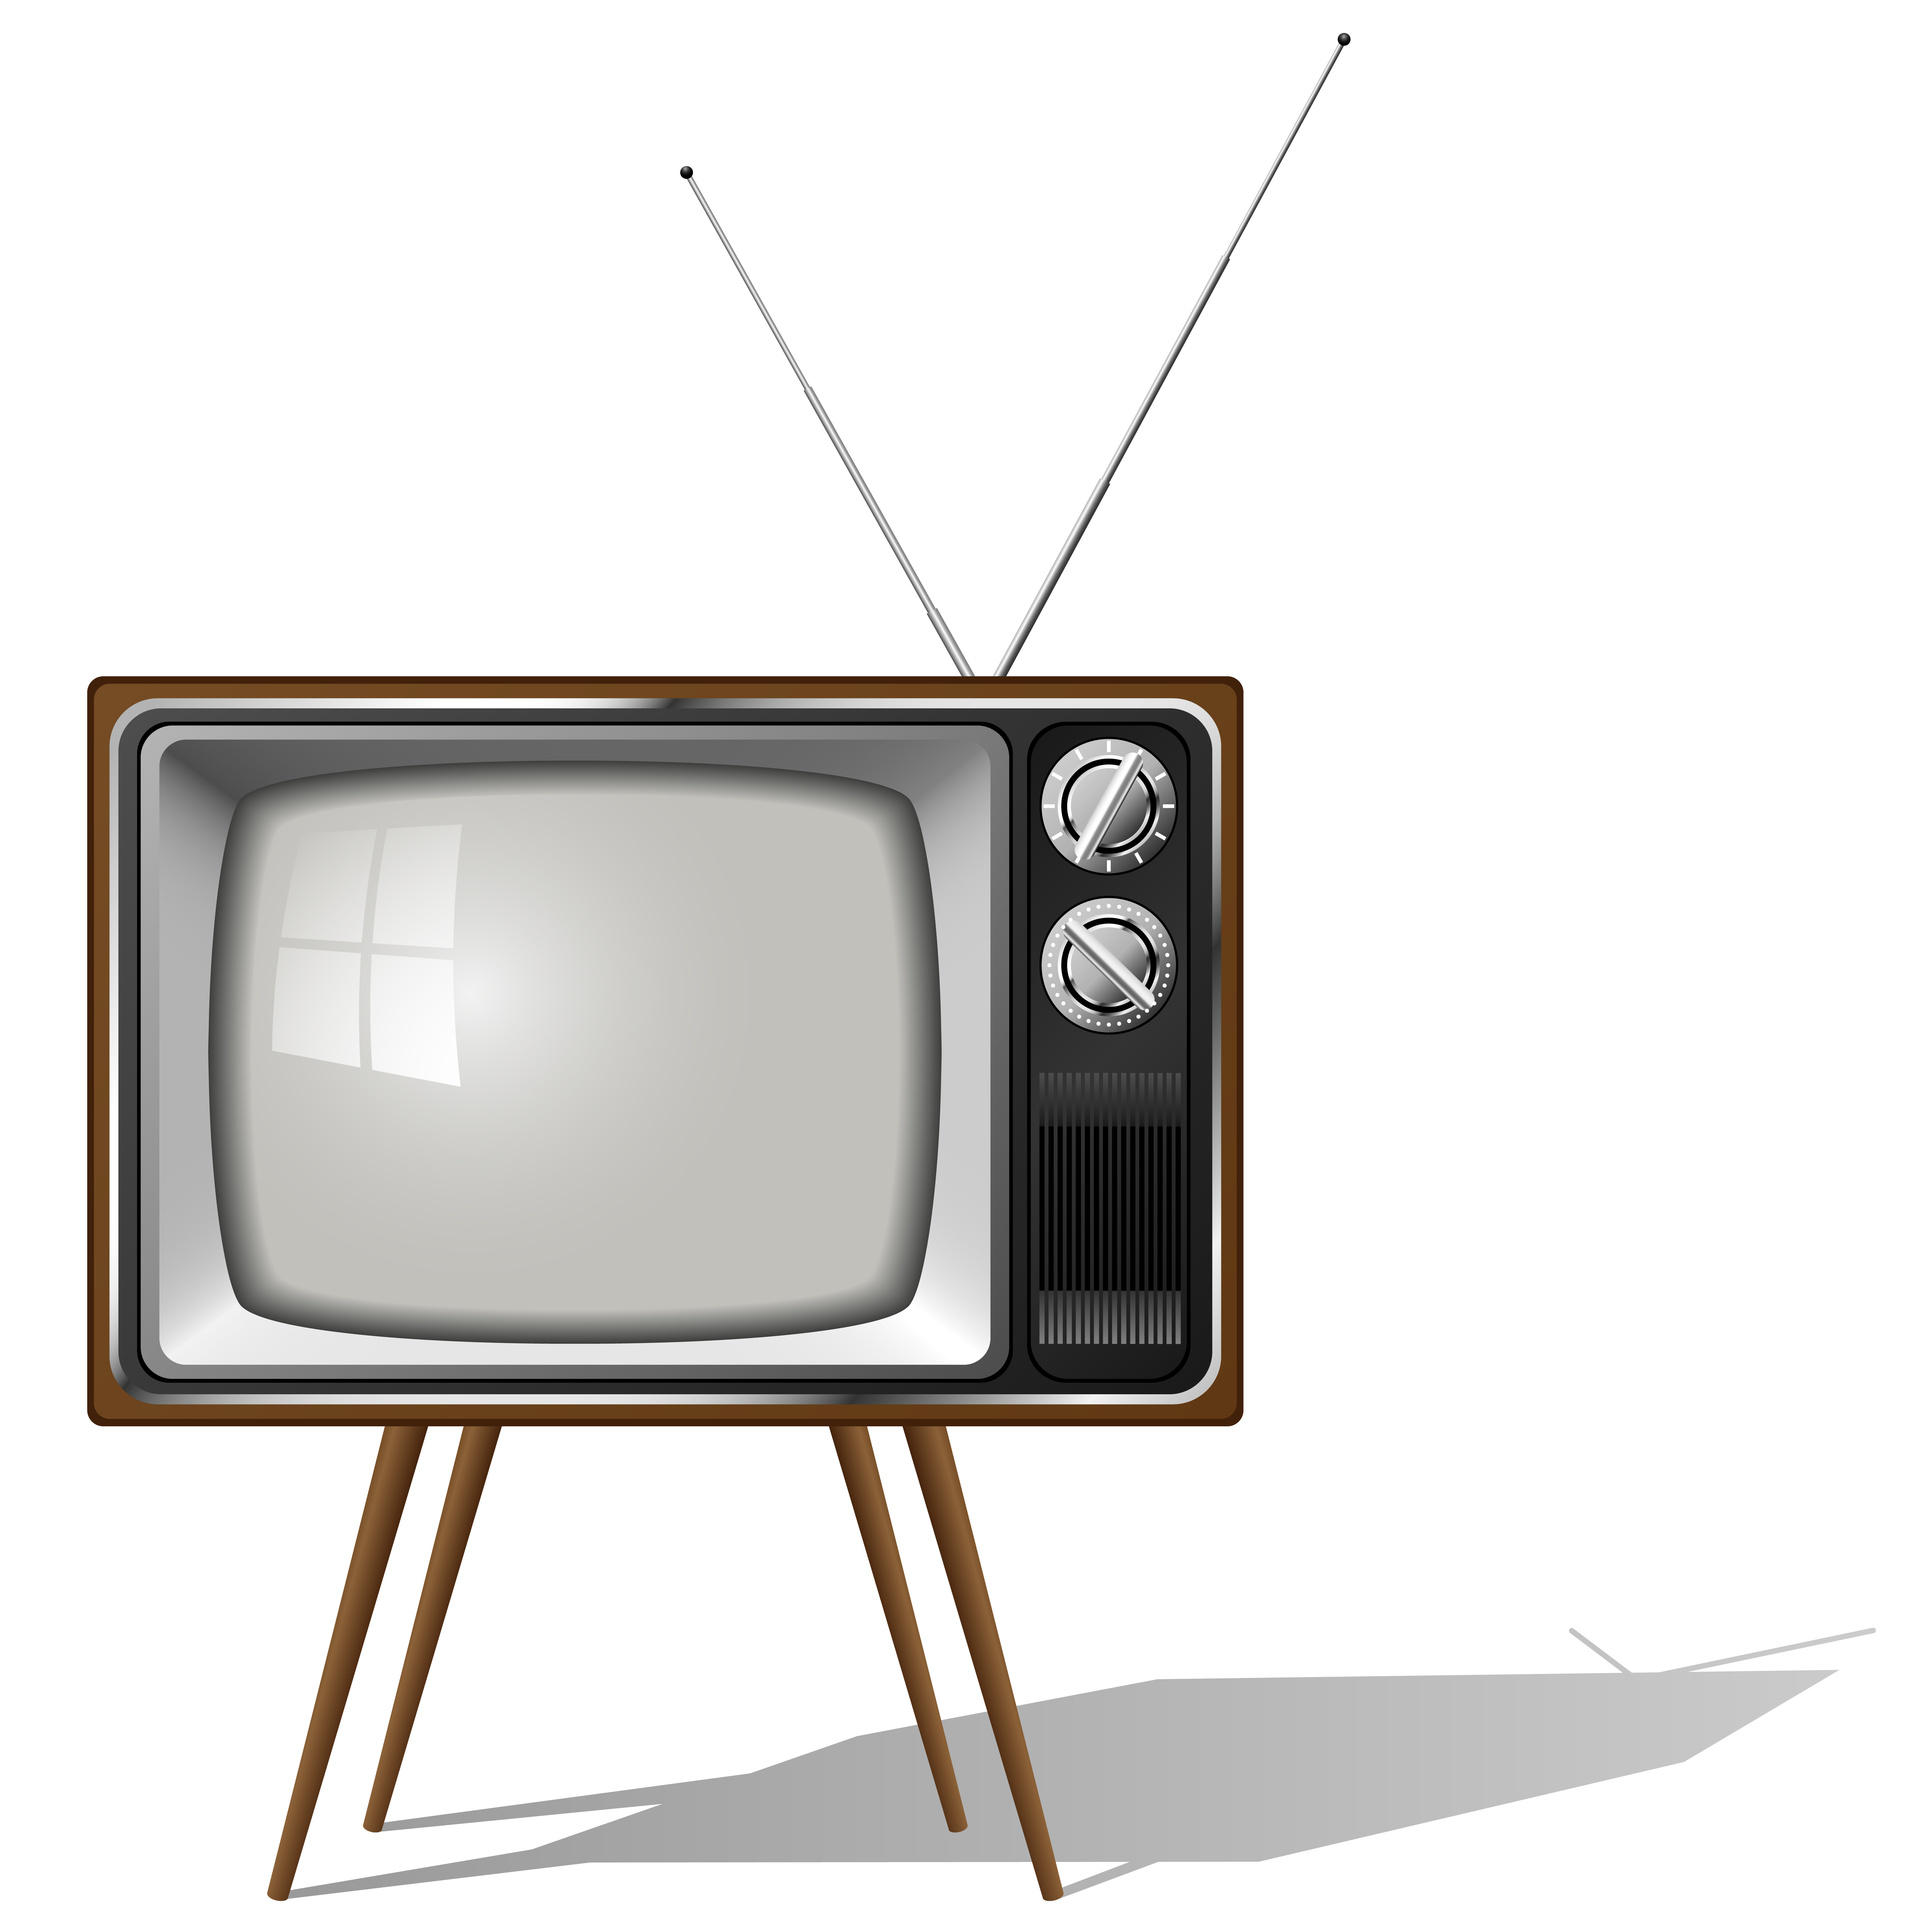 Old-fashioned four legged TV set isolated - Narrative Approaches